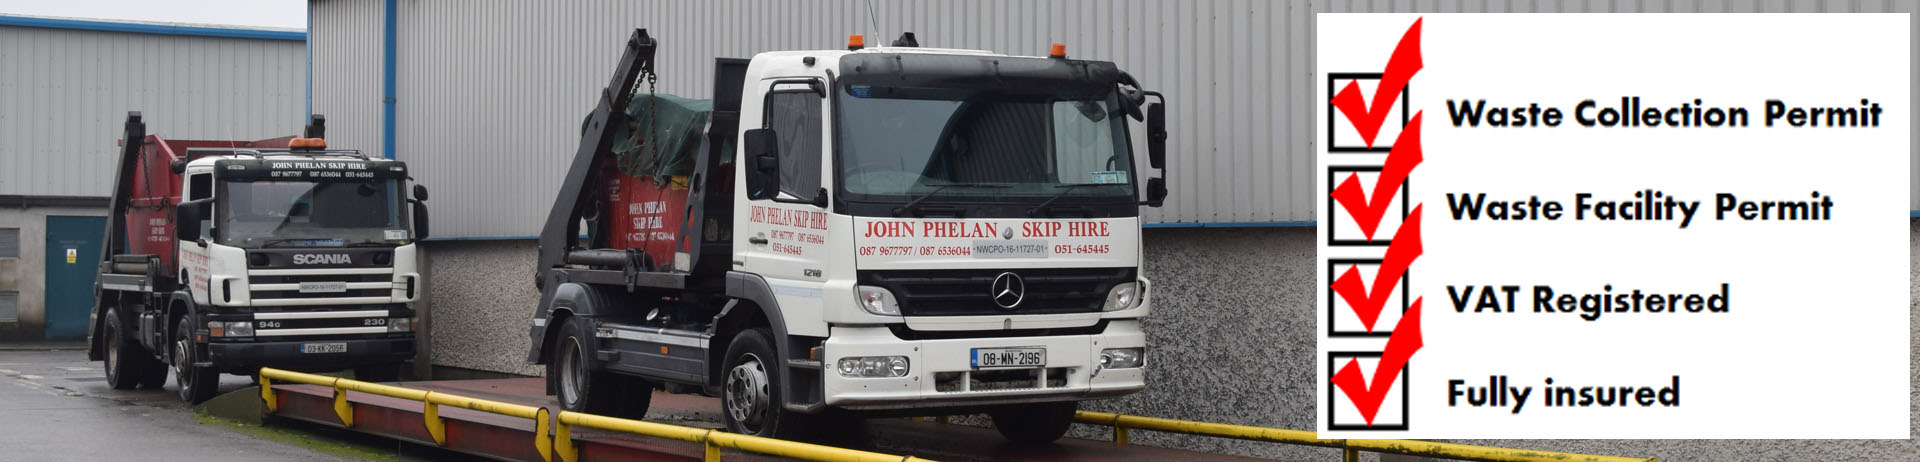 skip hire ireland waste facility permit header image